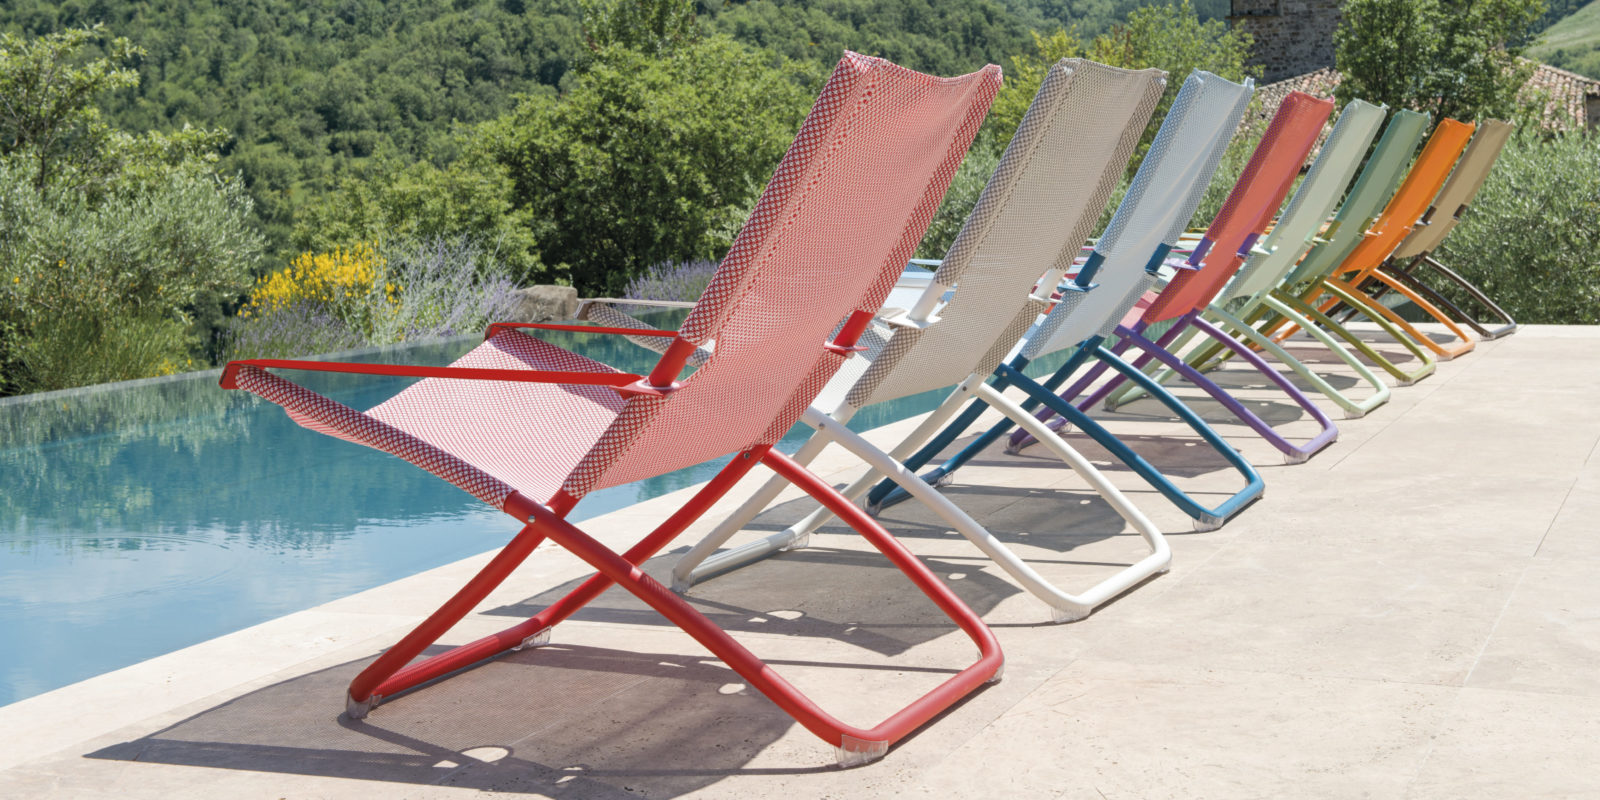 Chaises longue collection outdoor annecy argonay